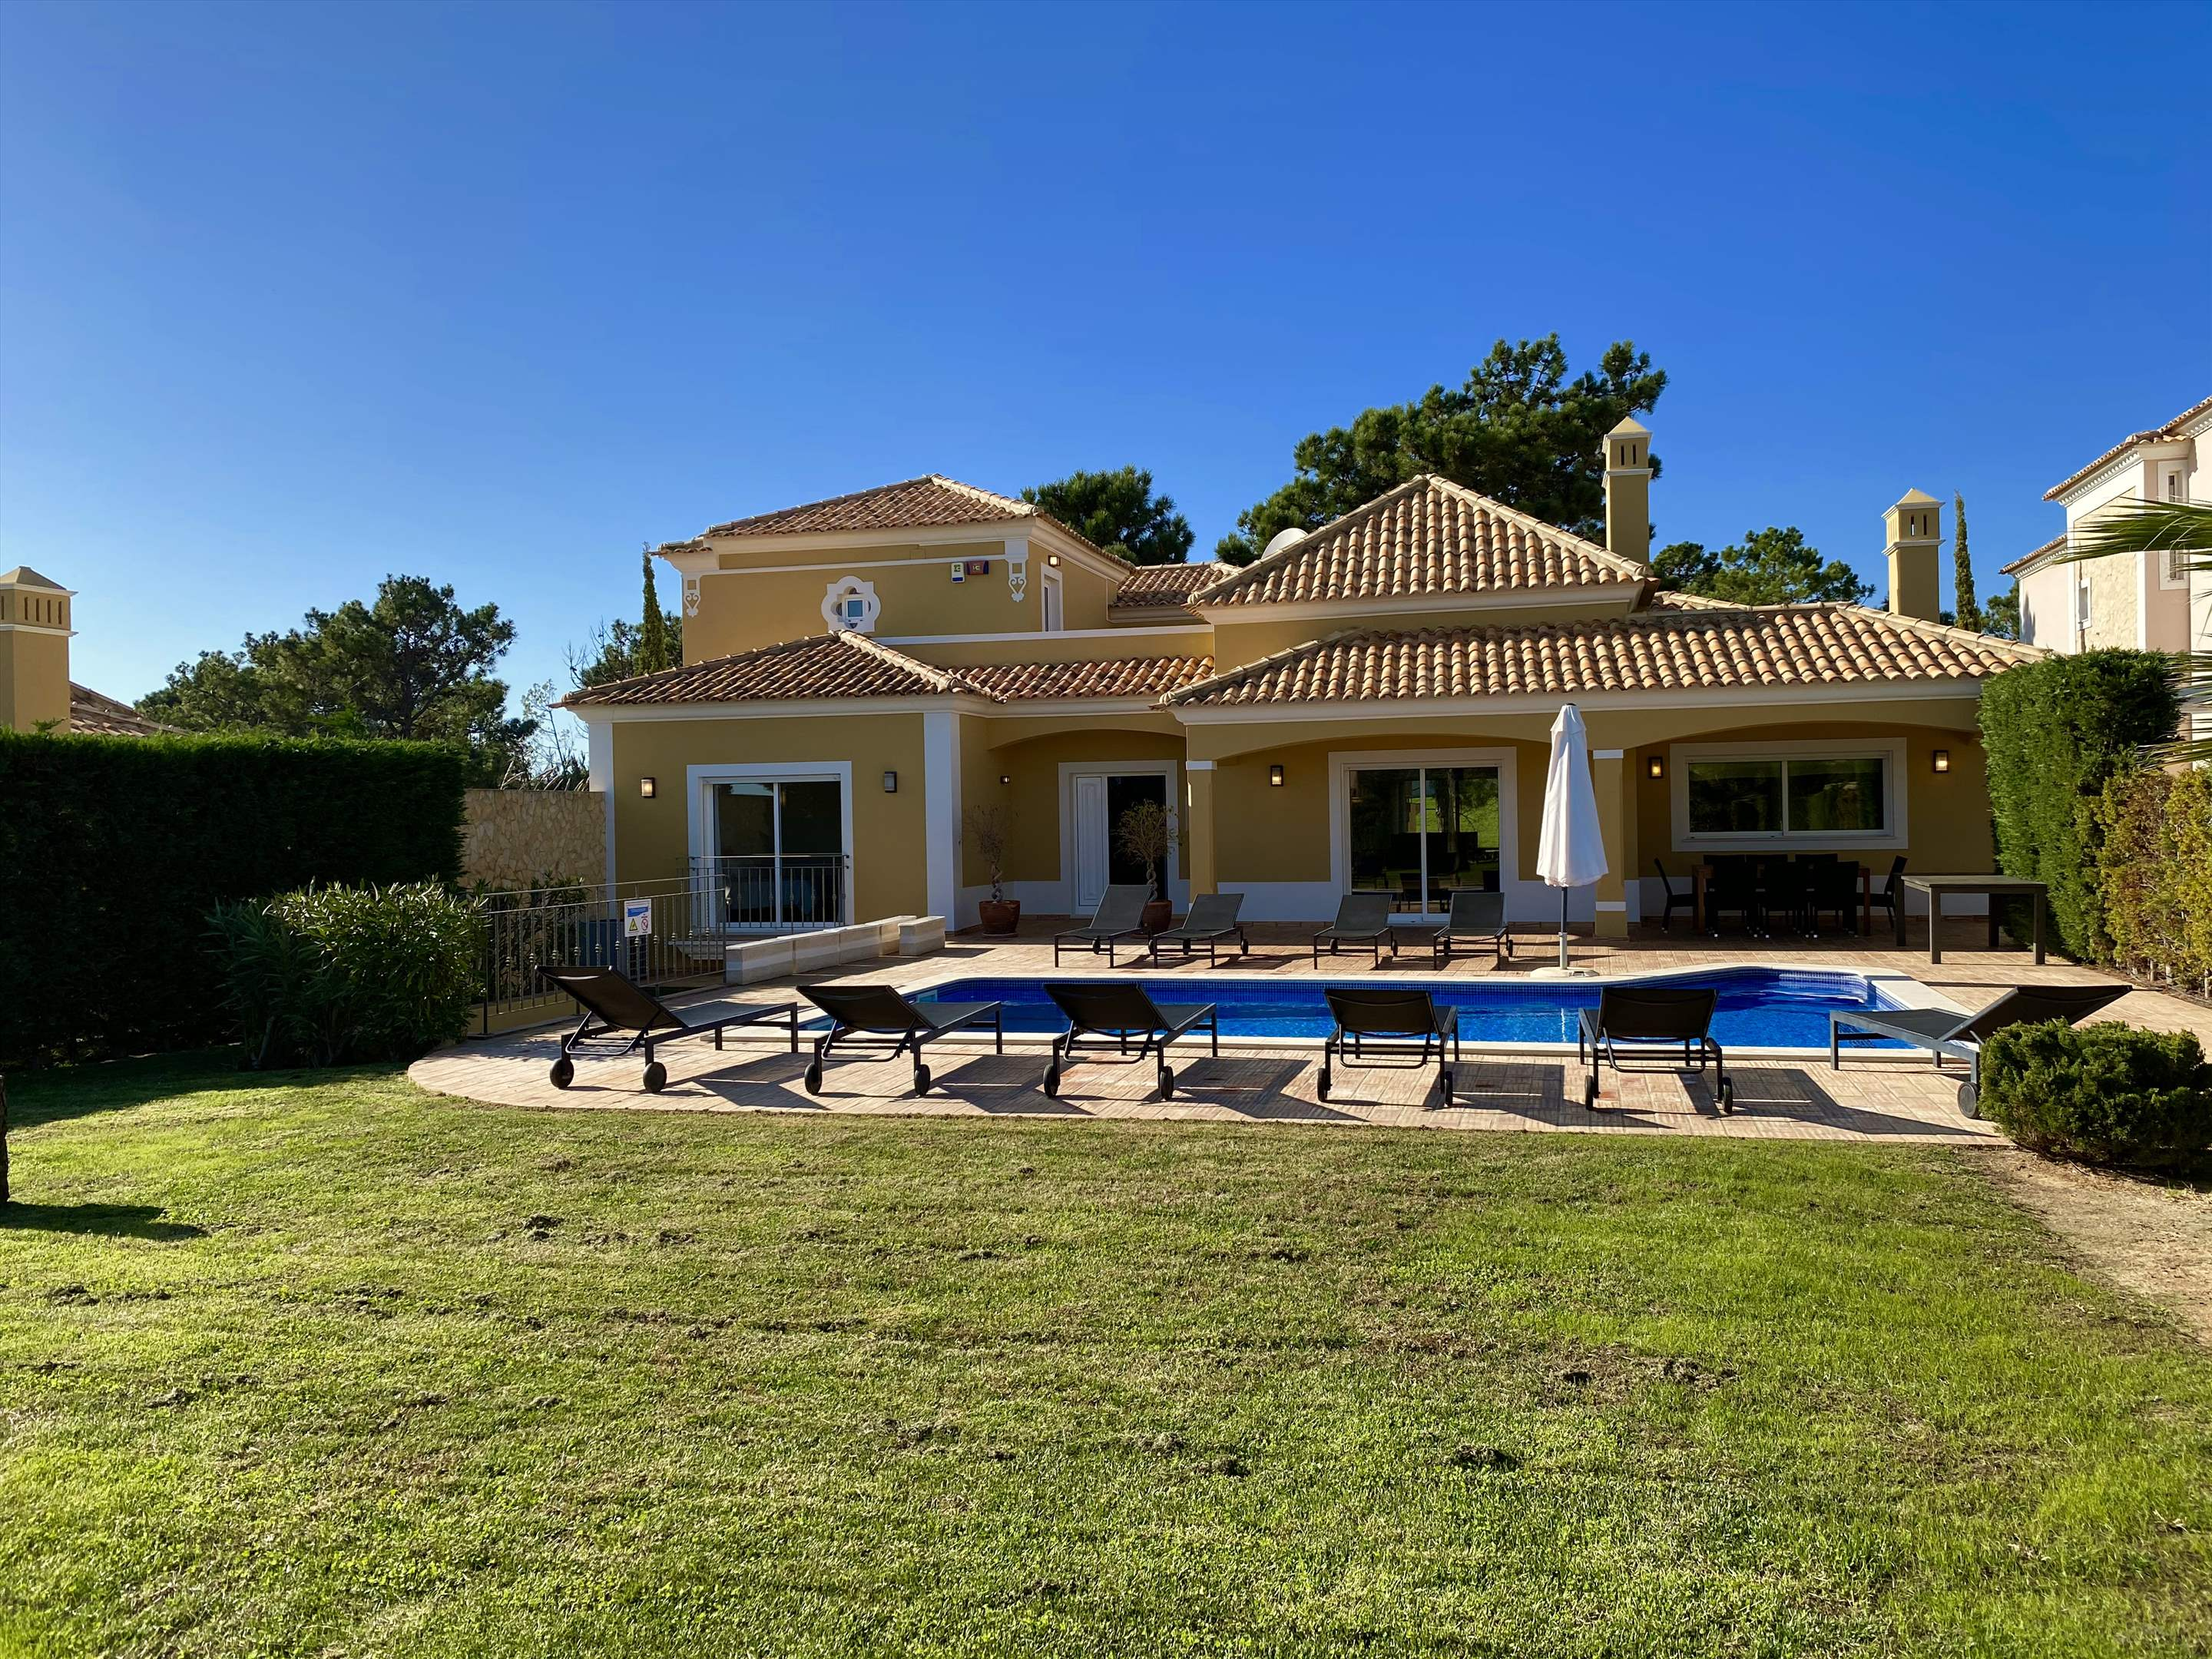 The Ocean Villas, 5 bedroom villa in Gale, Vale da Parra and Guia, Algarve Photo #1